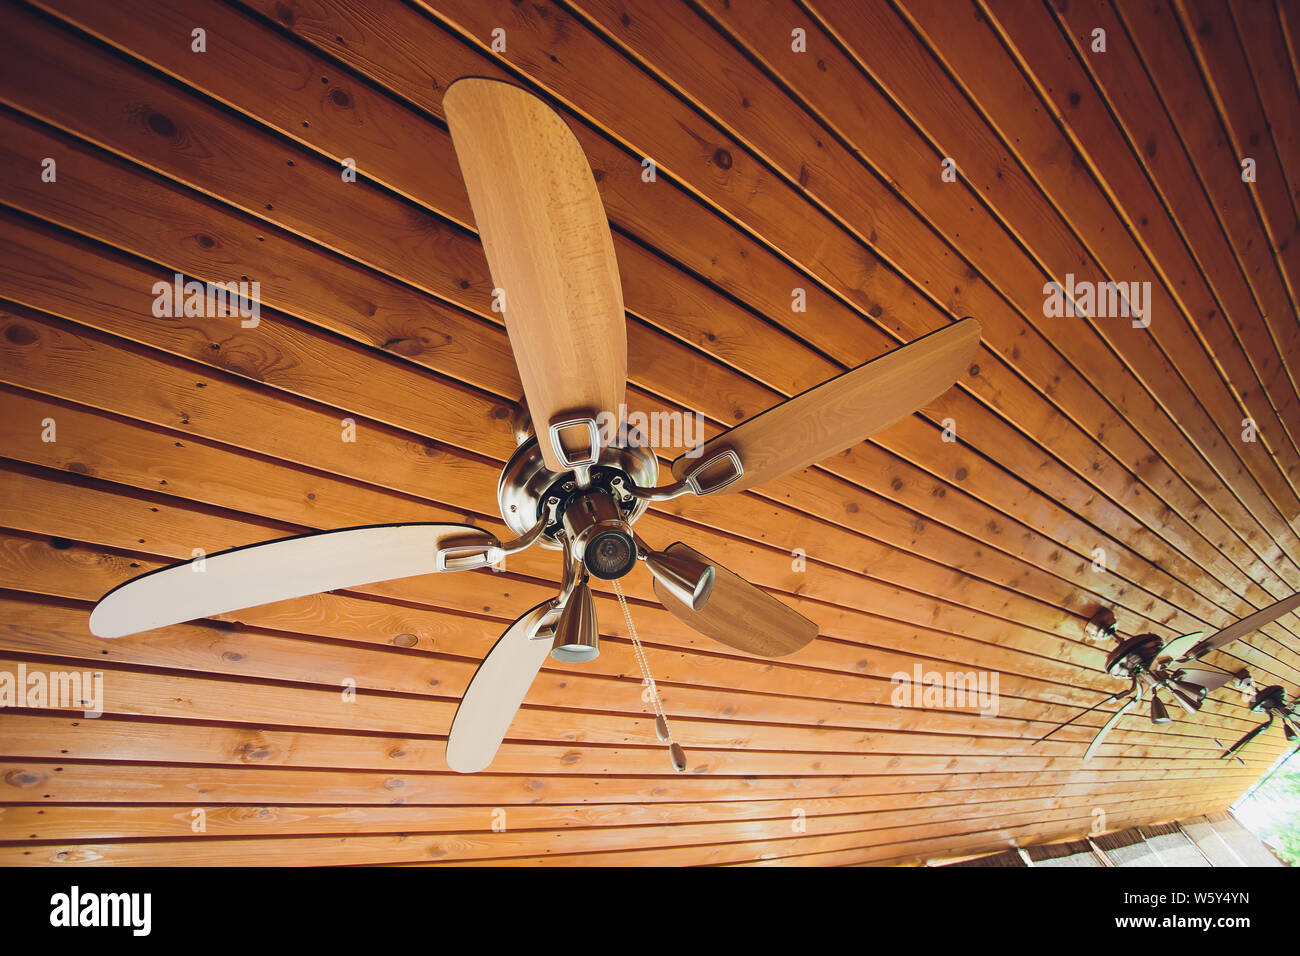 Old Ceiling Fan High Resolution Stock Photography And Images Alamy